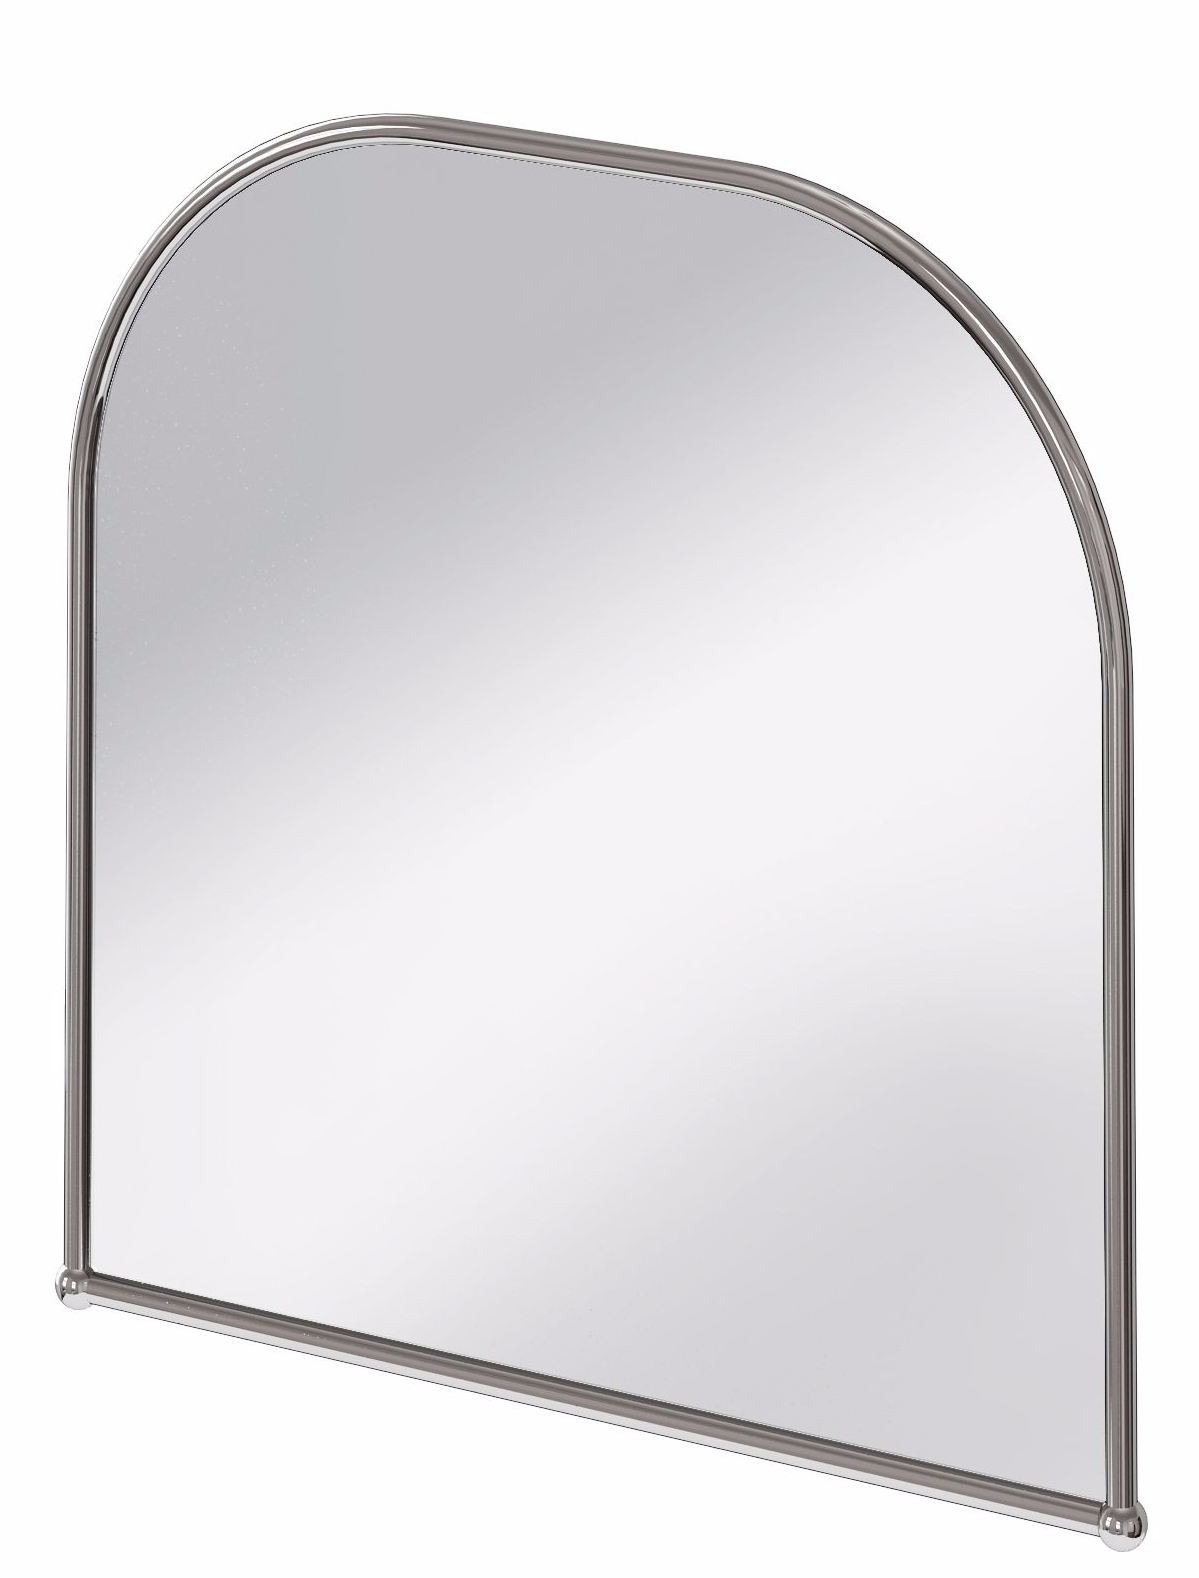 Burlington Curved Top Polished Stainless Steel Framed Traditional Throughout Curved Top Mirrors (View 5 of 15)